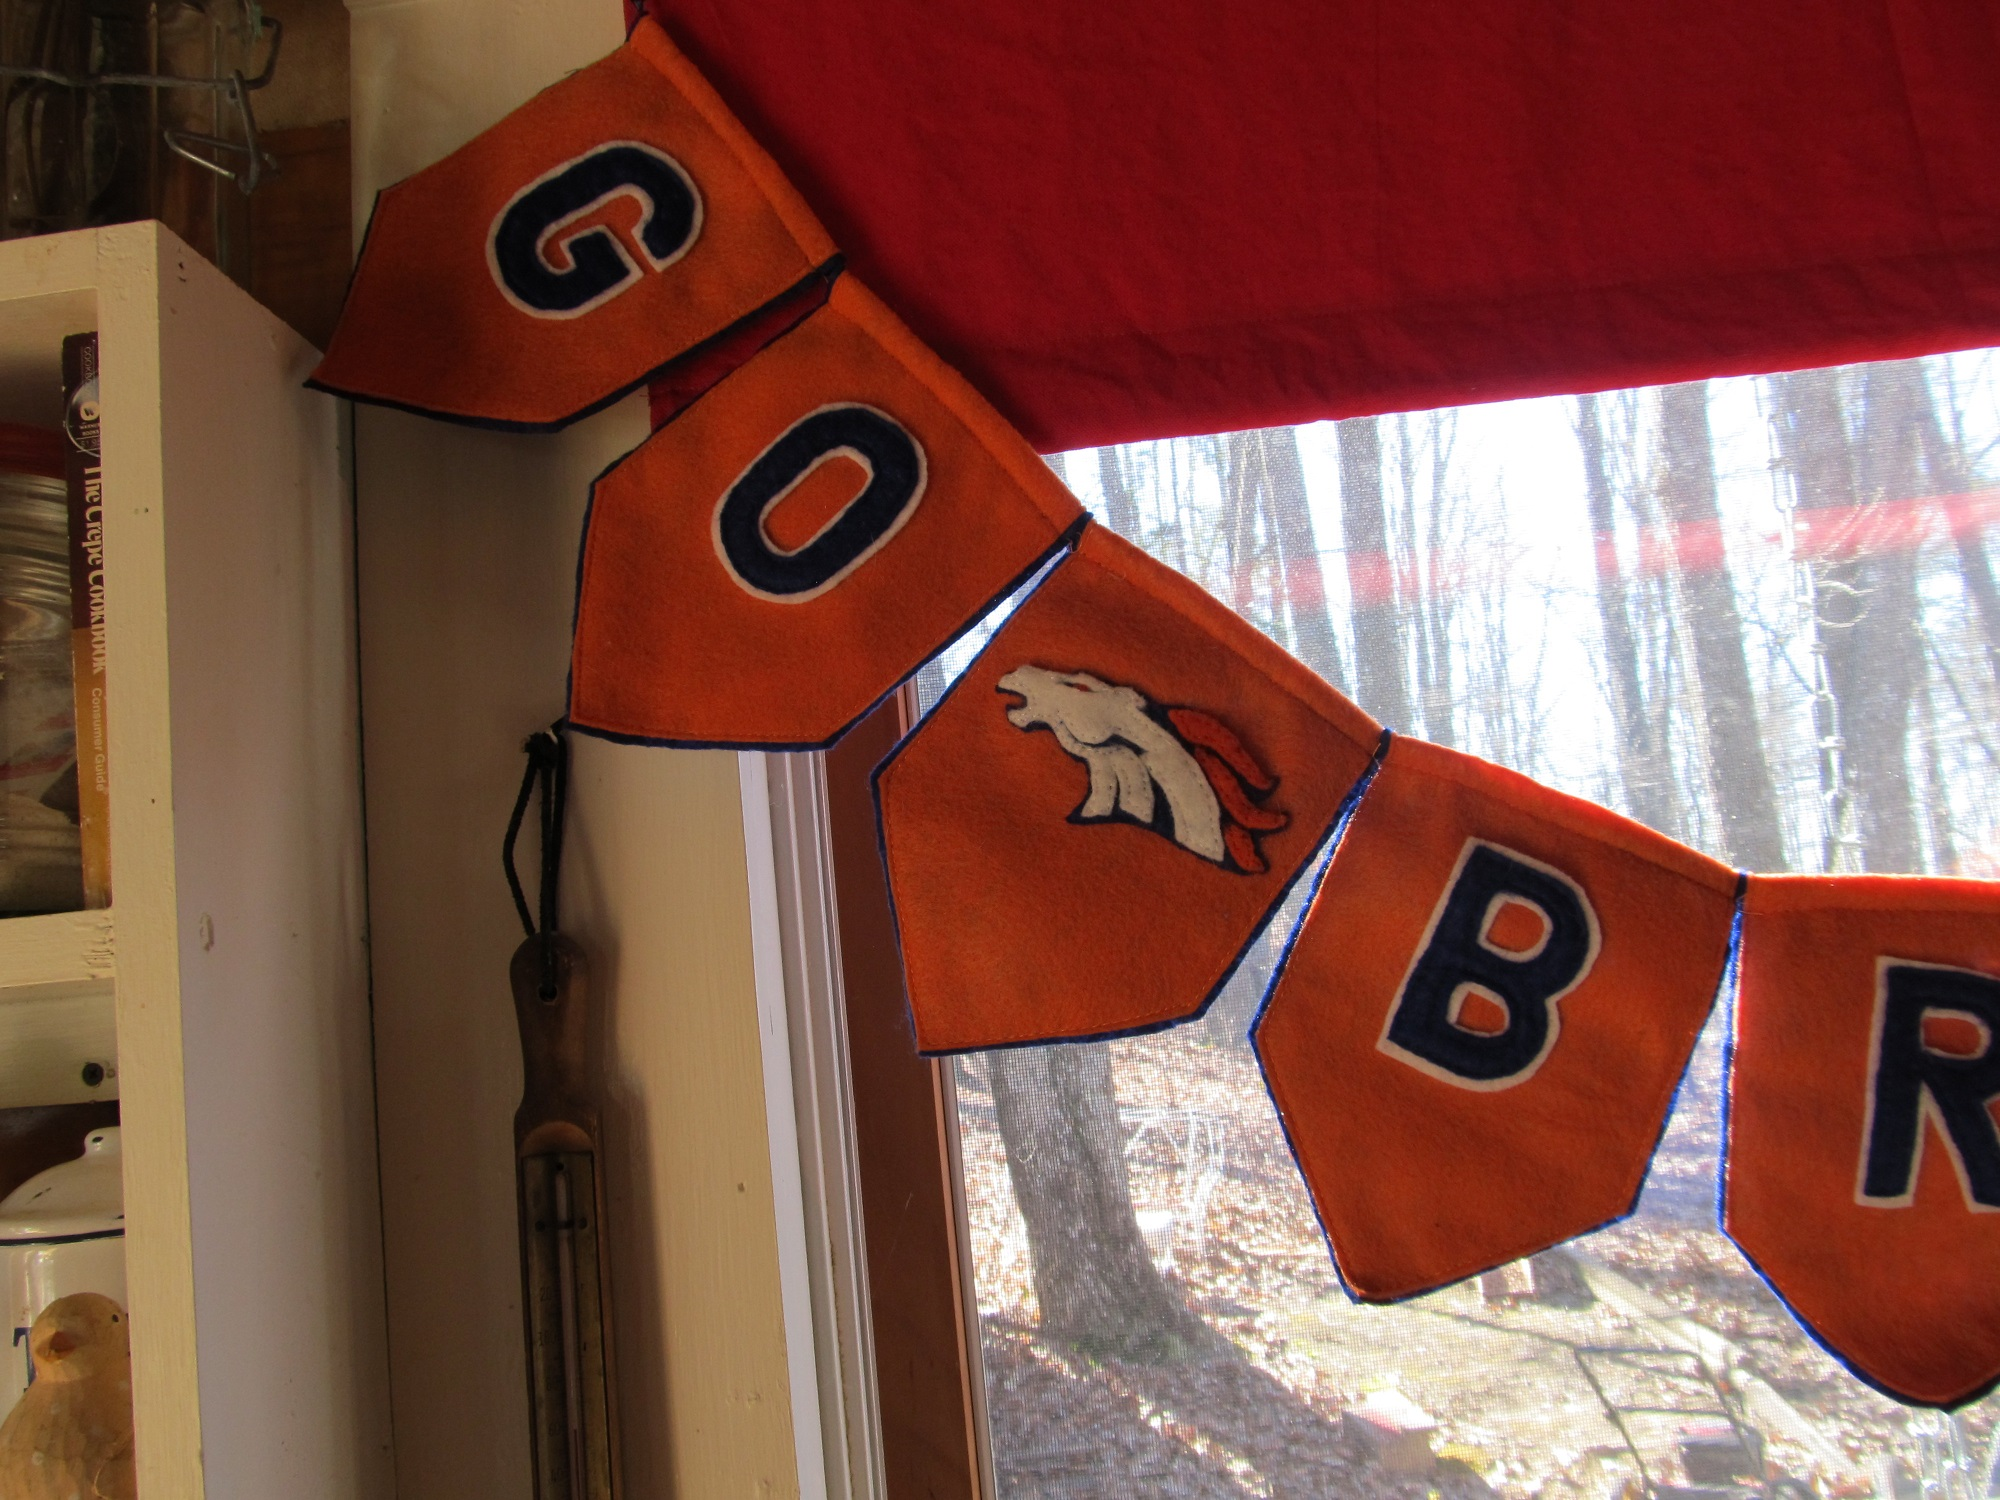 """<!-- AddThis Share Buttons above via filter on get_the_excerpt --> <div class=""""at-above-post-cat-page"""" data-url=""""https://www.not2crafty.com/2014/01/denver-bronco-banner-super-bowl-party/"""" data-title=""""Denver bronco banner for your super bowl party""""></div>   I am a 49er fan who lives in Tennessee so will definitely be cheering for Peyton Manning and the Broncos. I decided to make a Bronco banner and am [...]<!-- AddThis Share Buttons below via filter on get_the_excerpt --> <div class=""""at-below-post-cat-page"""" data-url=""""https://www.not2crafty.com/2014/01/denver-bronco-banner-super-bowl-party/"""" data-title=""""Denver bronco banner for your super bowl party""""></div><!-- AddThis Share Buttons generic via filter on get_the_excerpt --> <!-- AddThis Related Posts generic via filter on get_the_excerpt -->"""